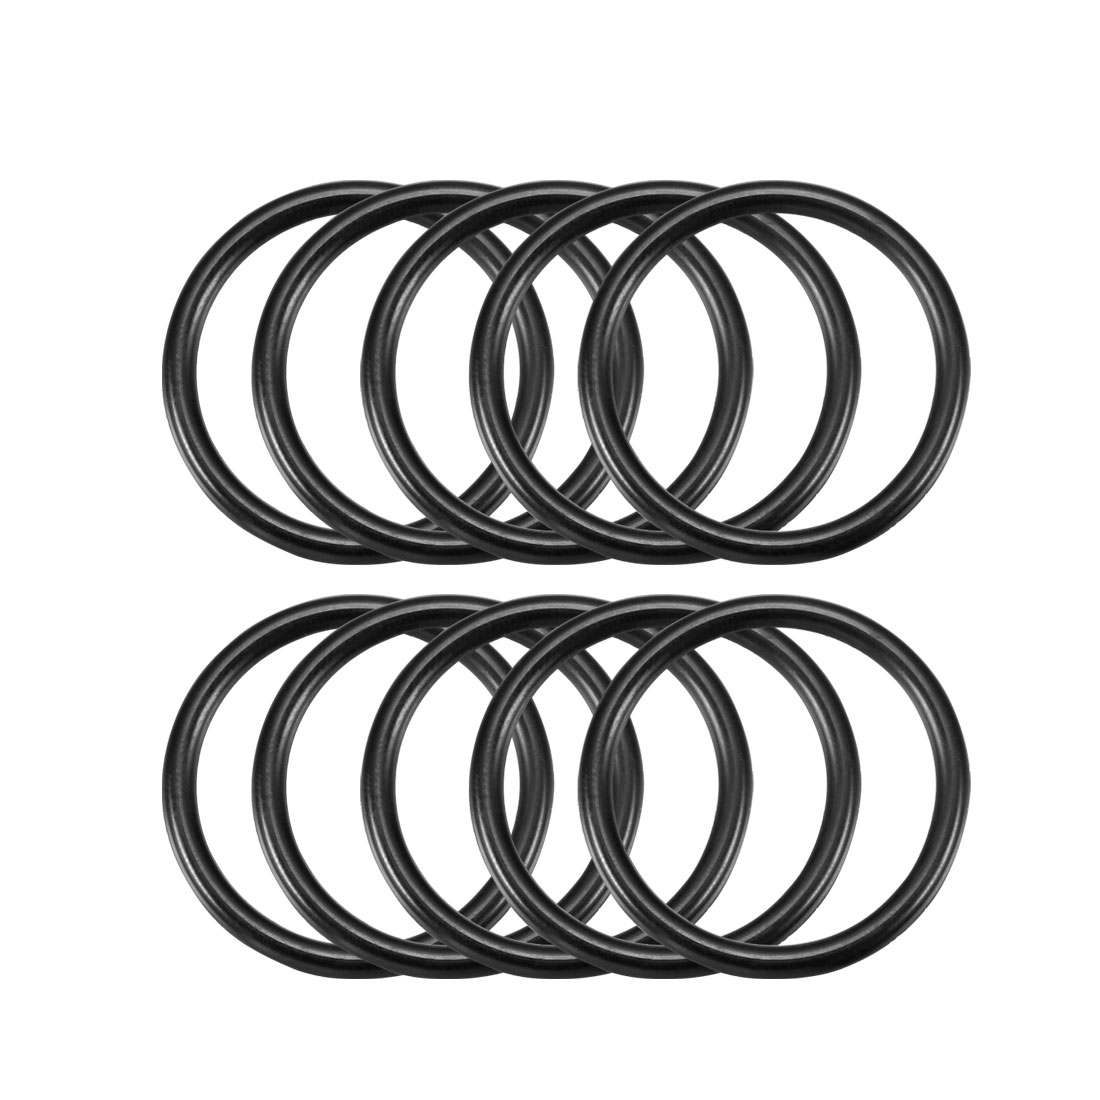 10 Pcs 34mm x 27mm x 3.1mm Black Rubber O Ring Oil Seal Gaskets